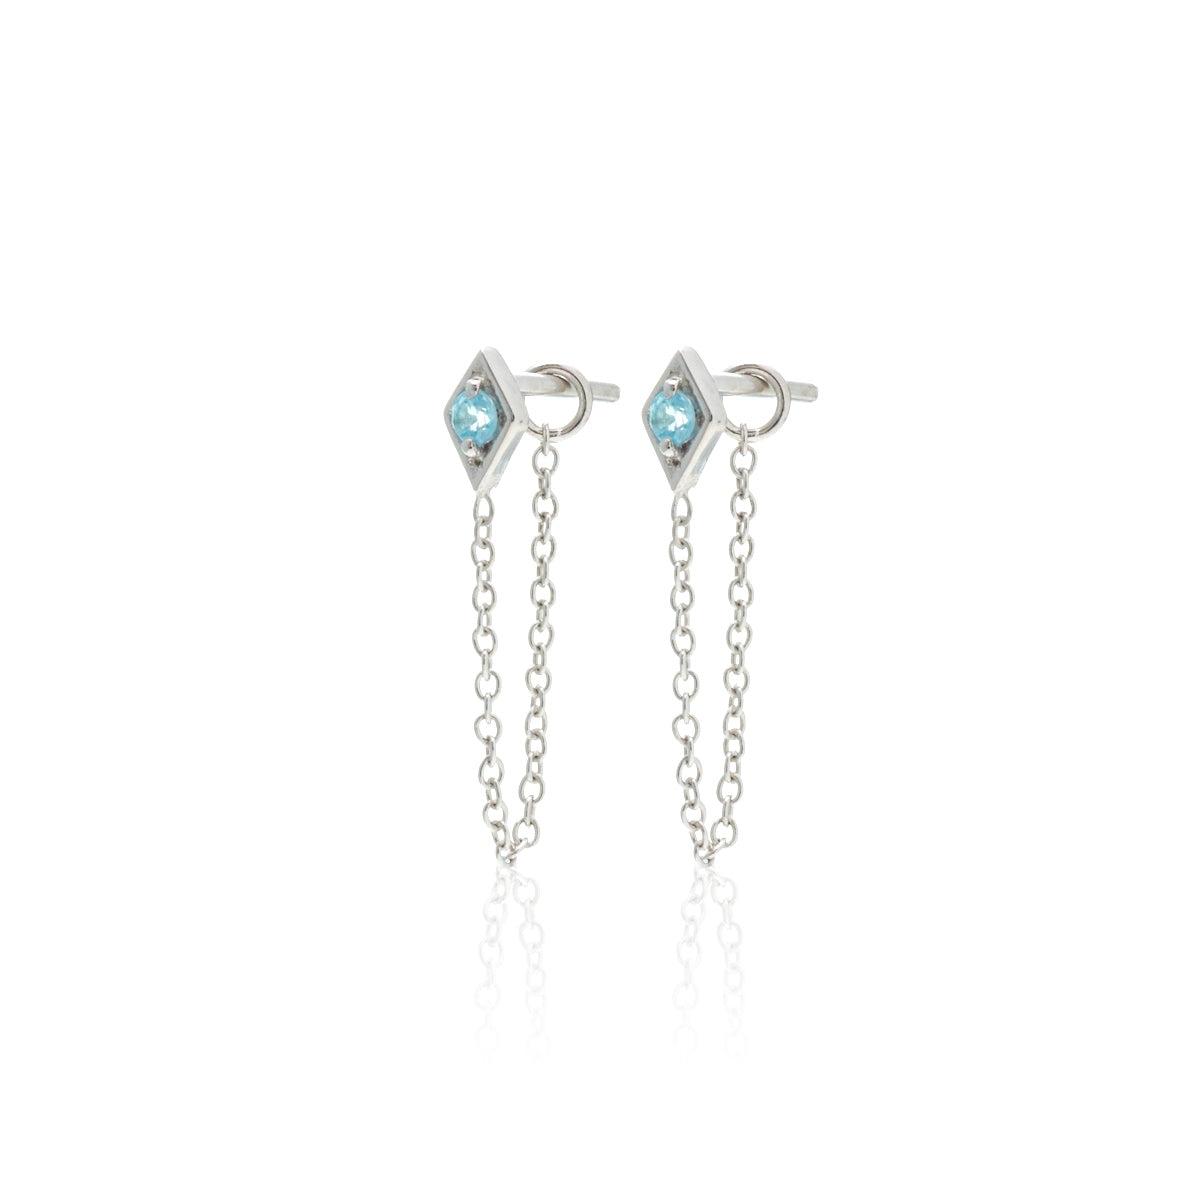 Silk & Steel Keepsake Connected Earrings Blue Topaz Silver